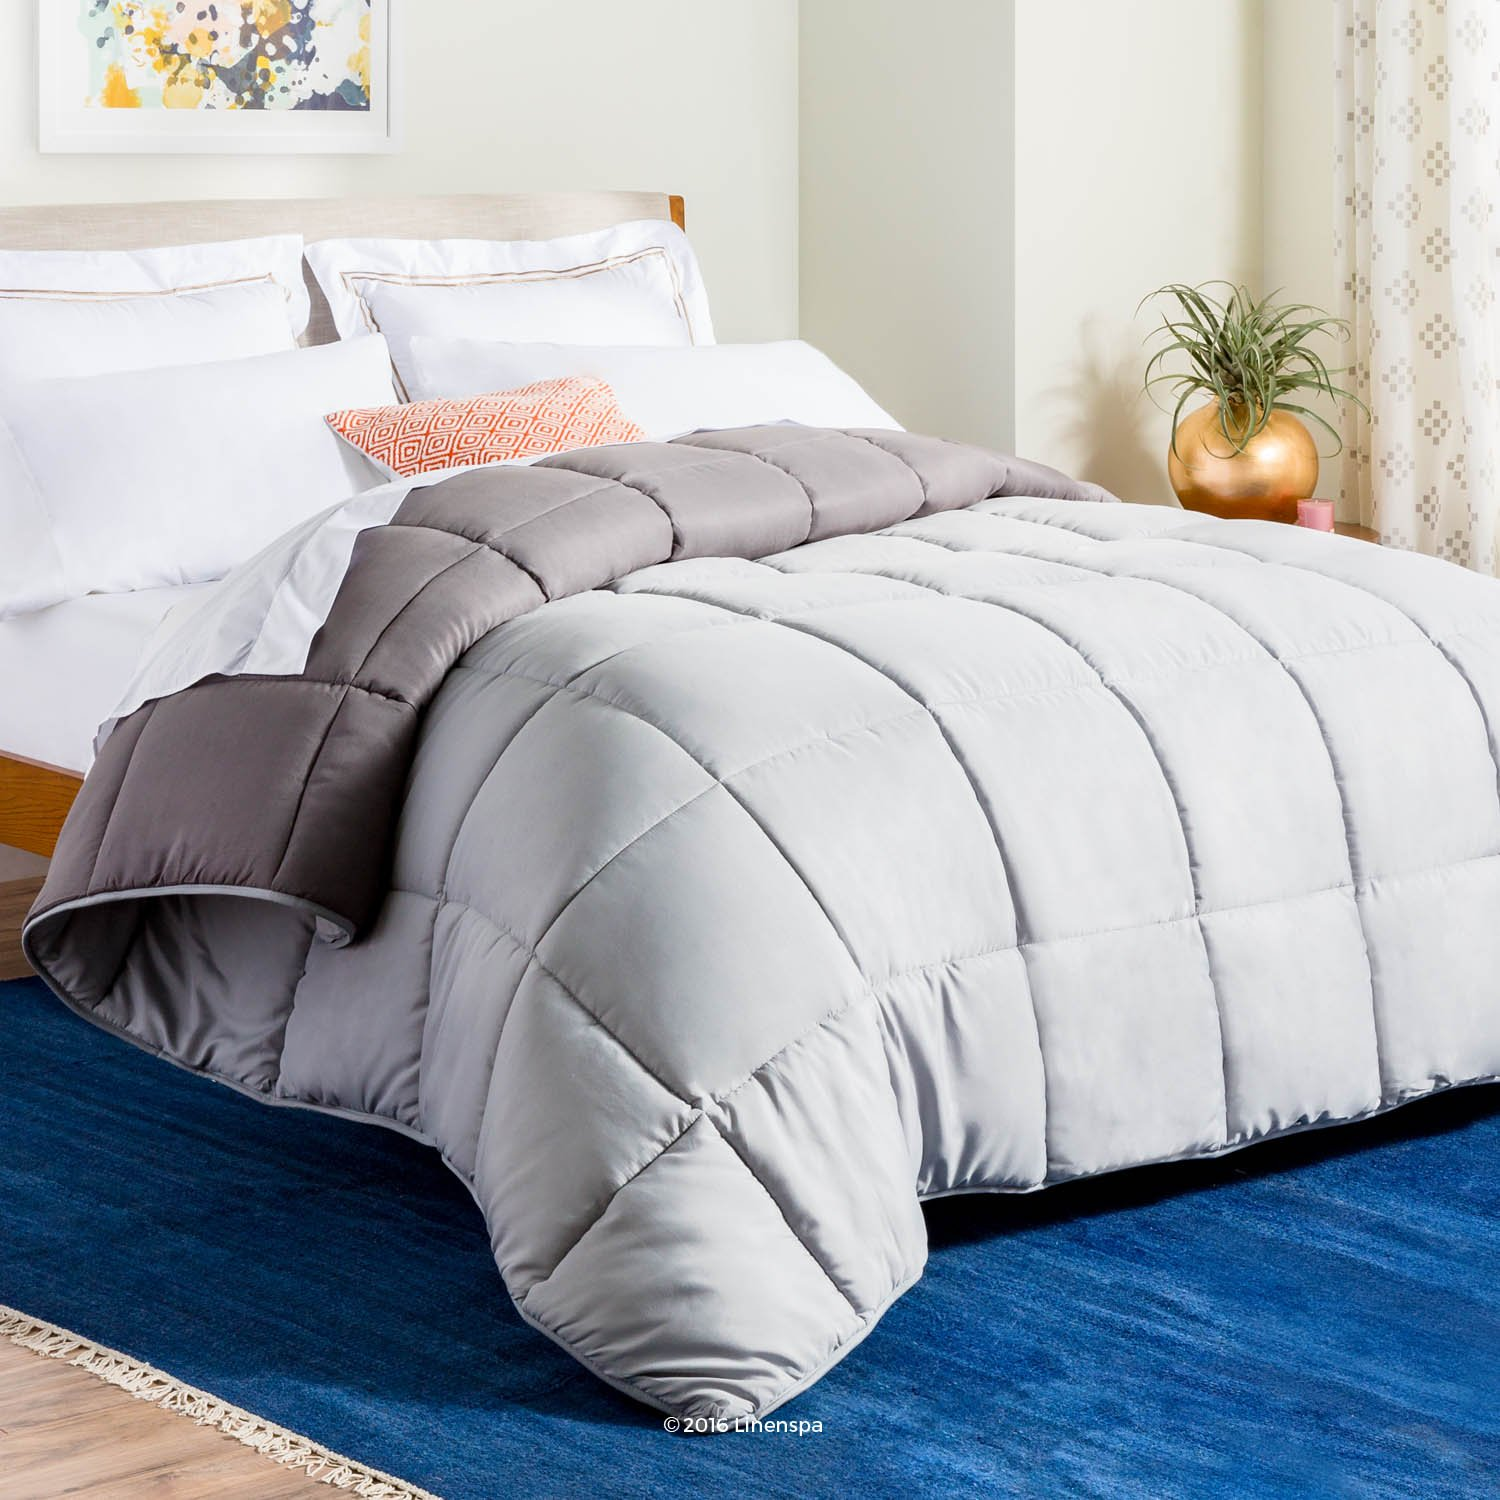 duvet down buy hotel luxury marriott comforter bedding product hotels mar from xlrg